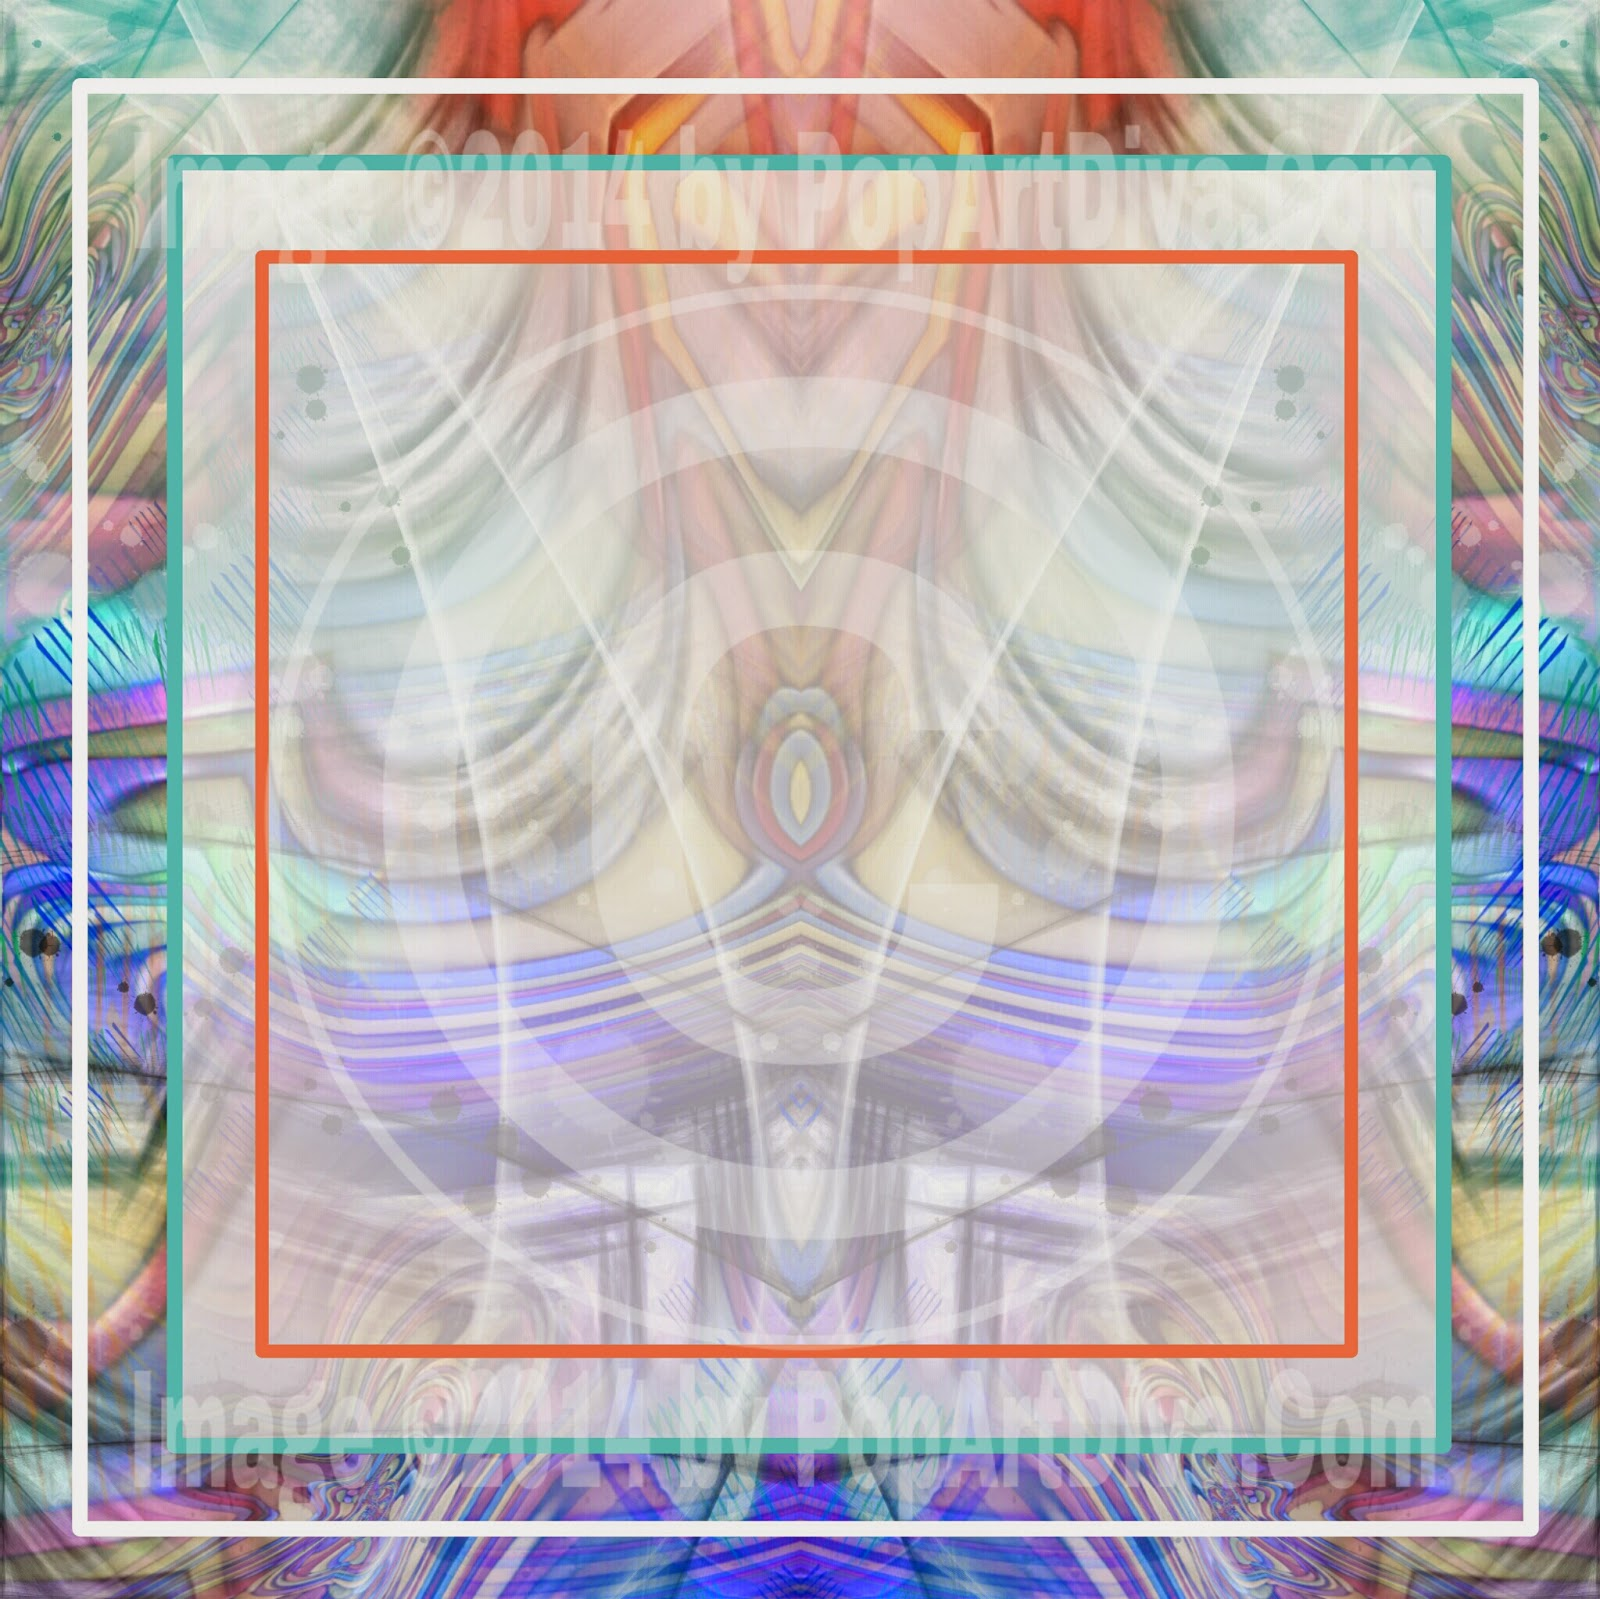 http://store.payloadz.com/details/2084845-photos-and-images-clip-art-squished-square-abstract-web-graphic-frame-border.html